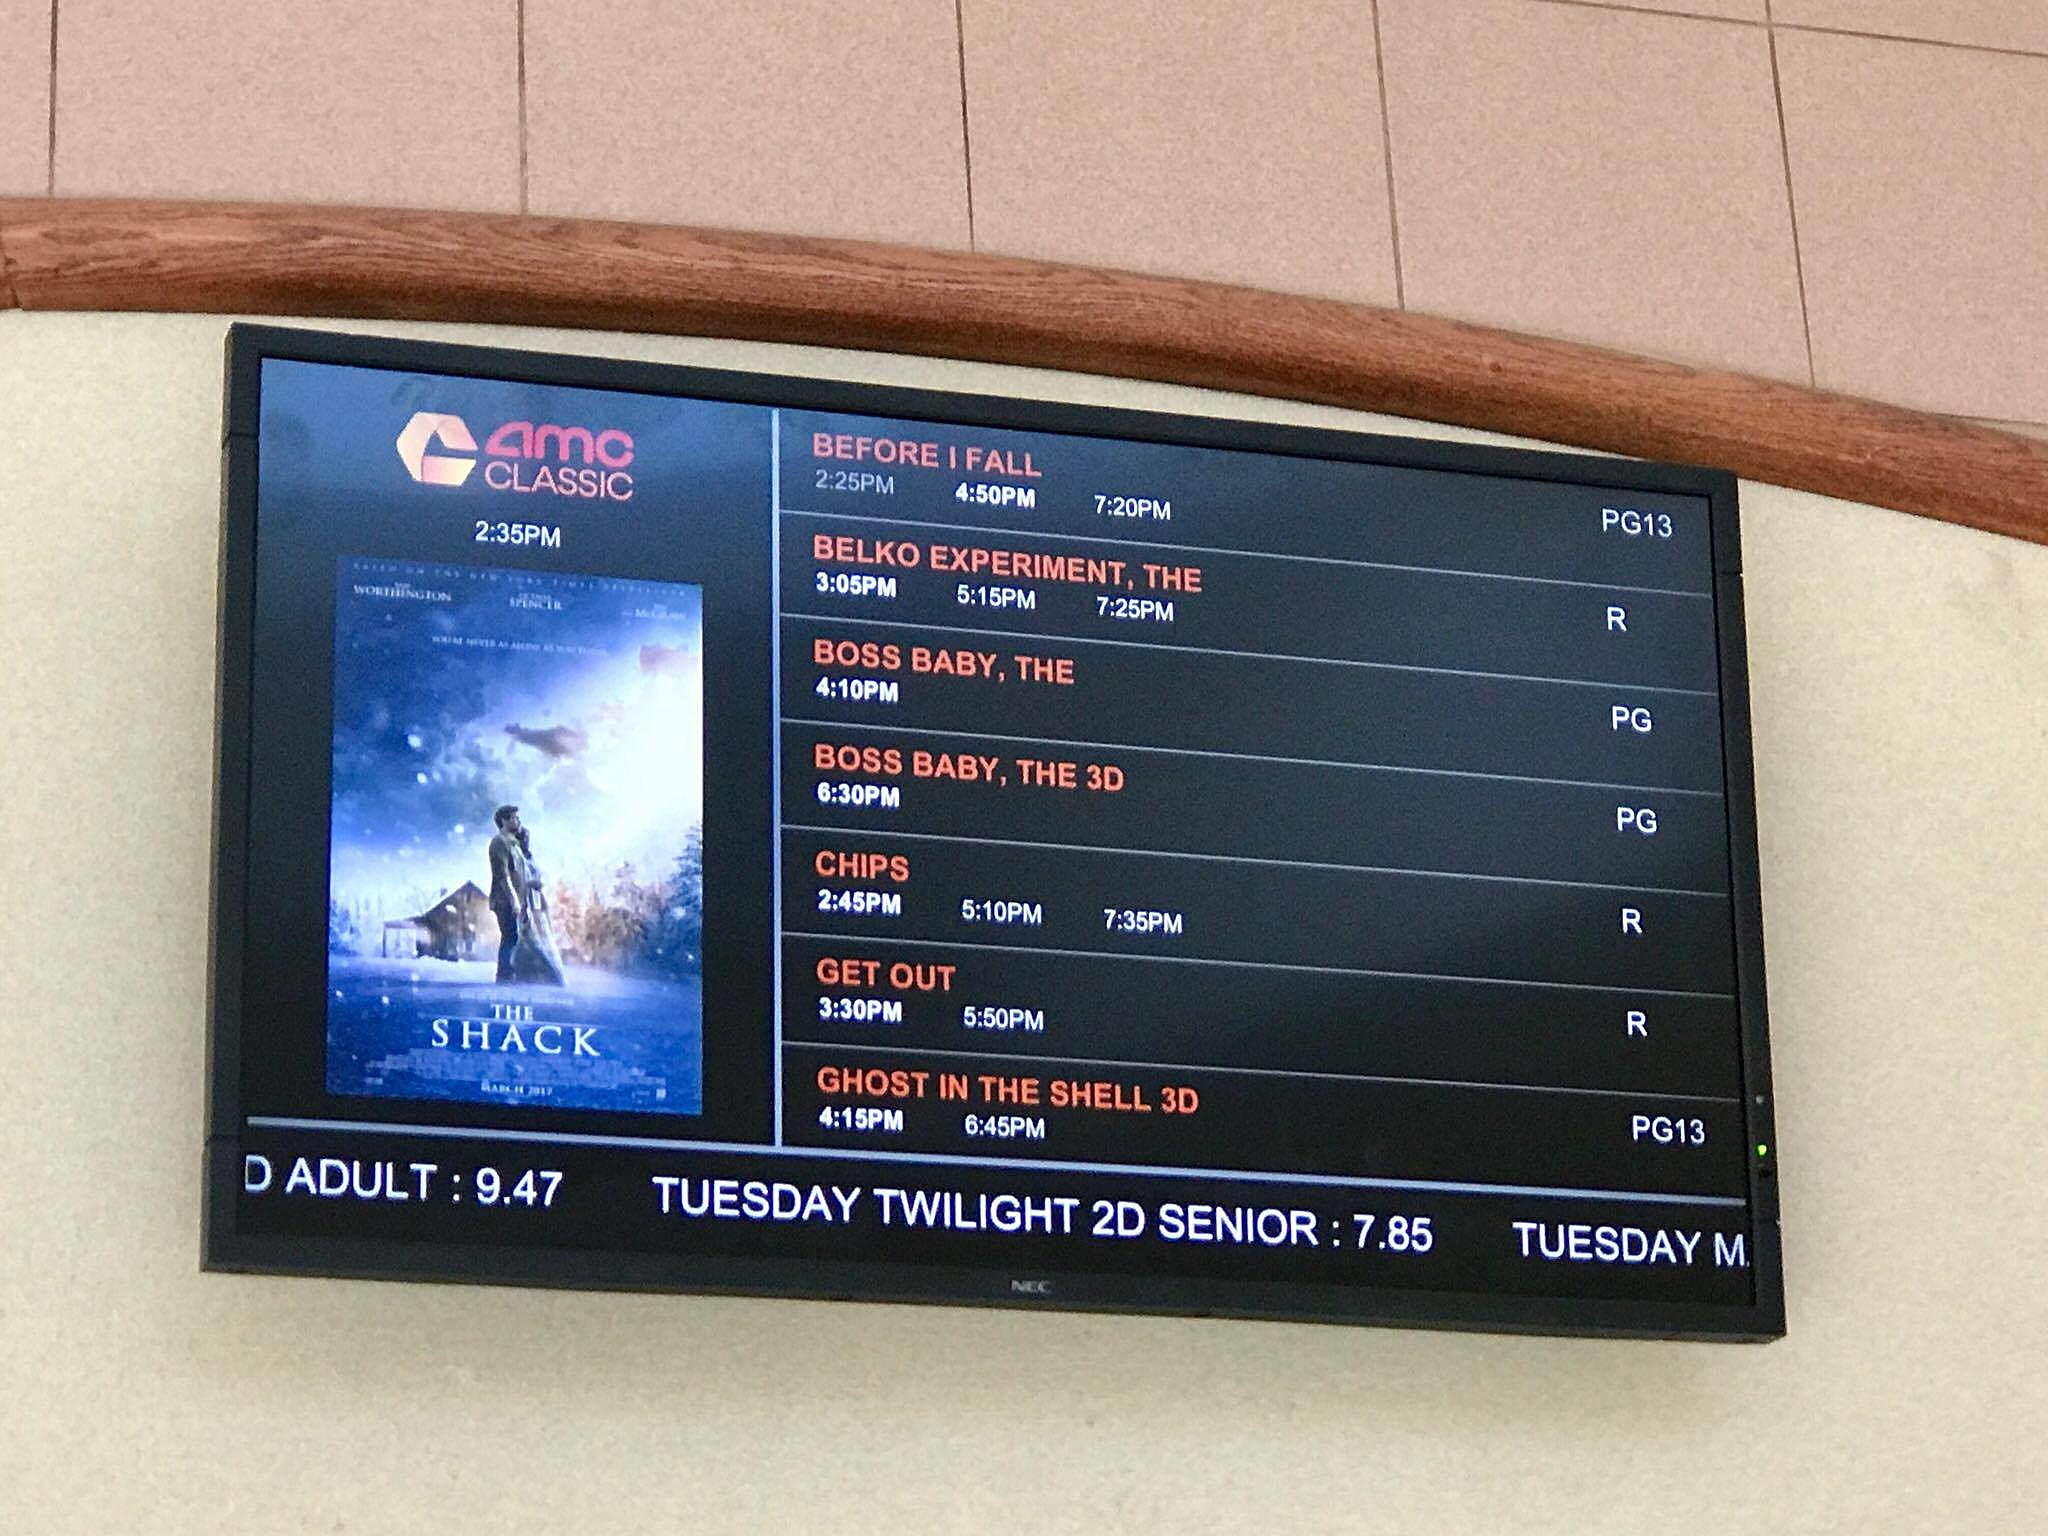 mall theater getting updated AMC logos